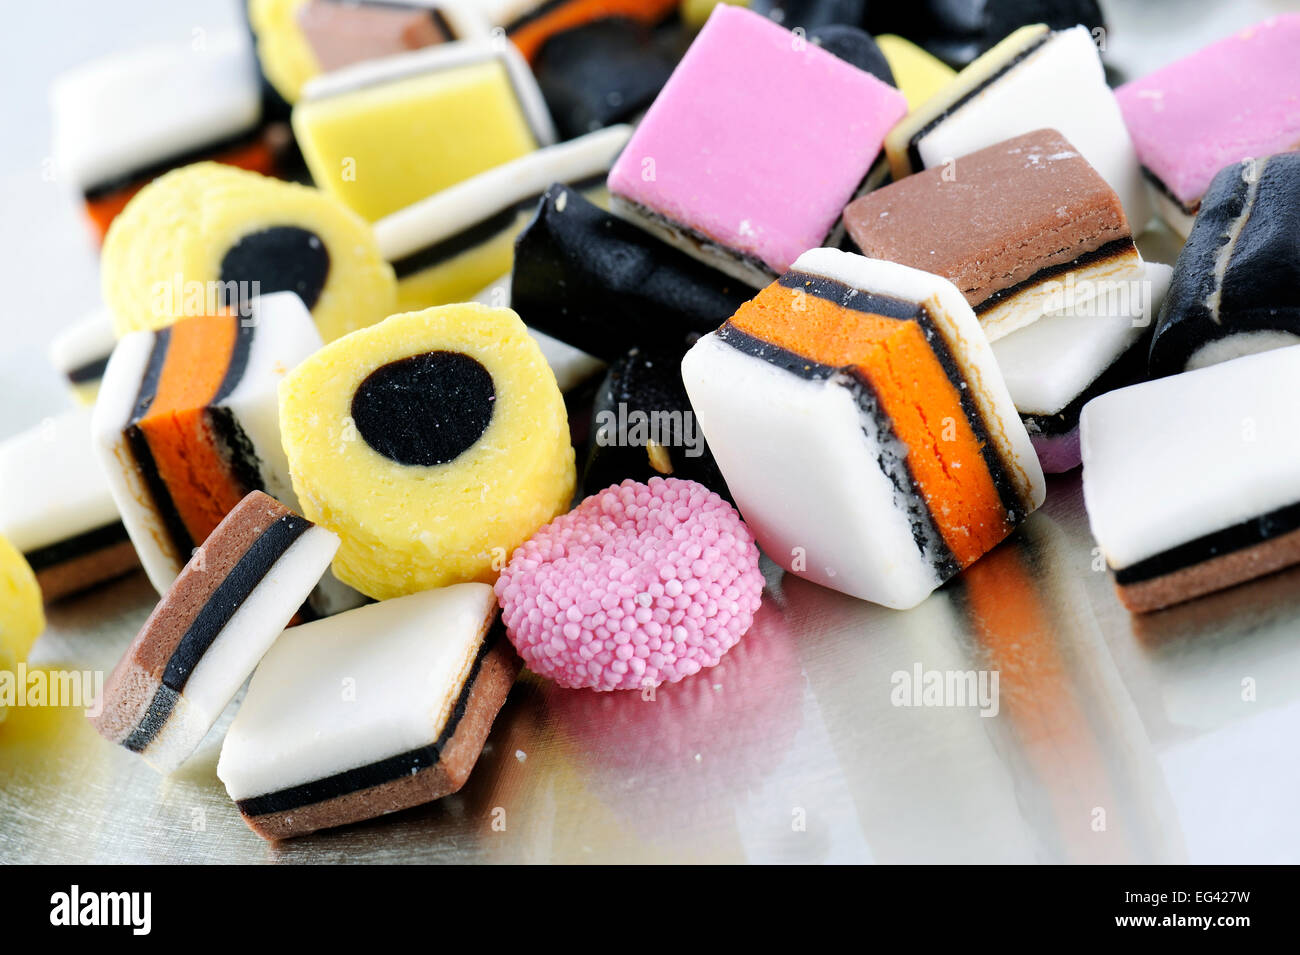 colorful liquorice candies on tray - Stock Image